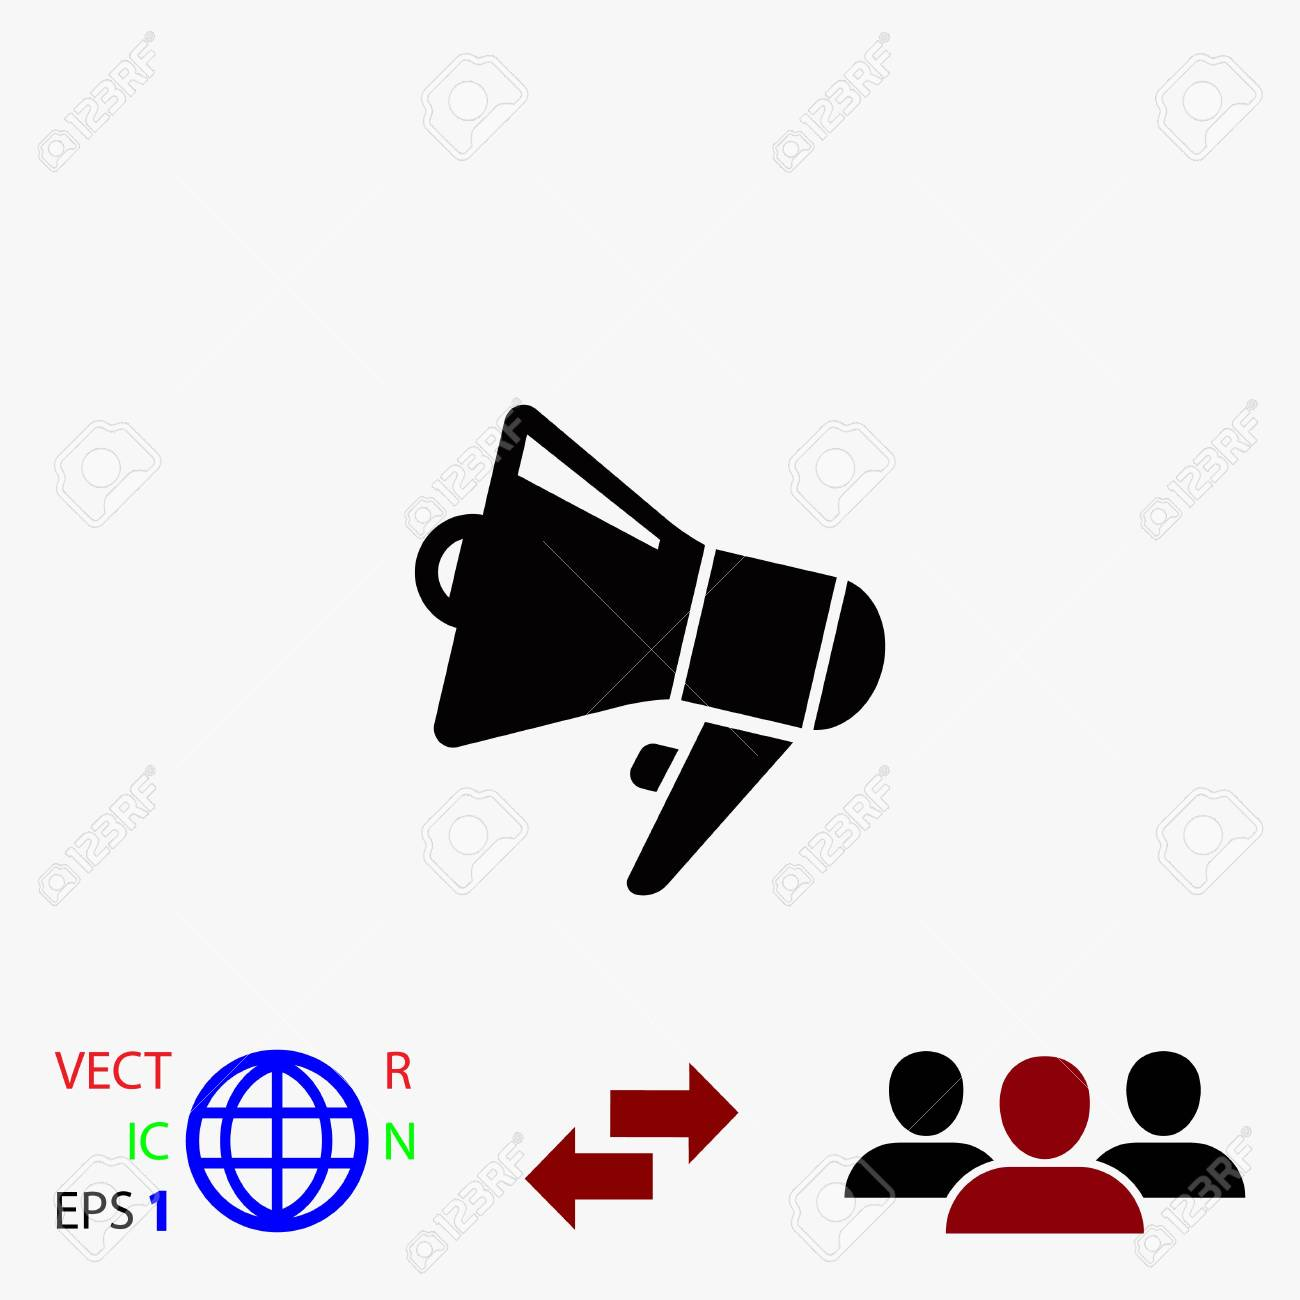 loudspeaker icon vector flat design best vector icon royalty free cliparts vectors and stock illustration image 82923650 123rf com